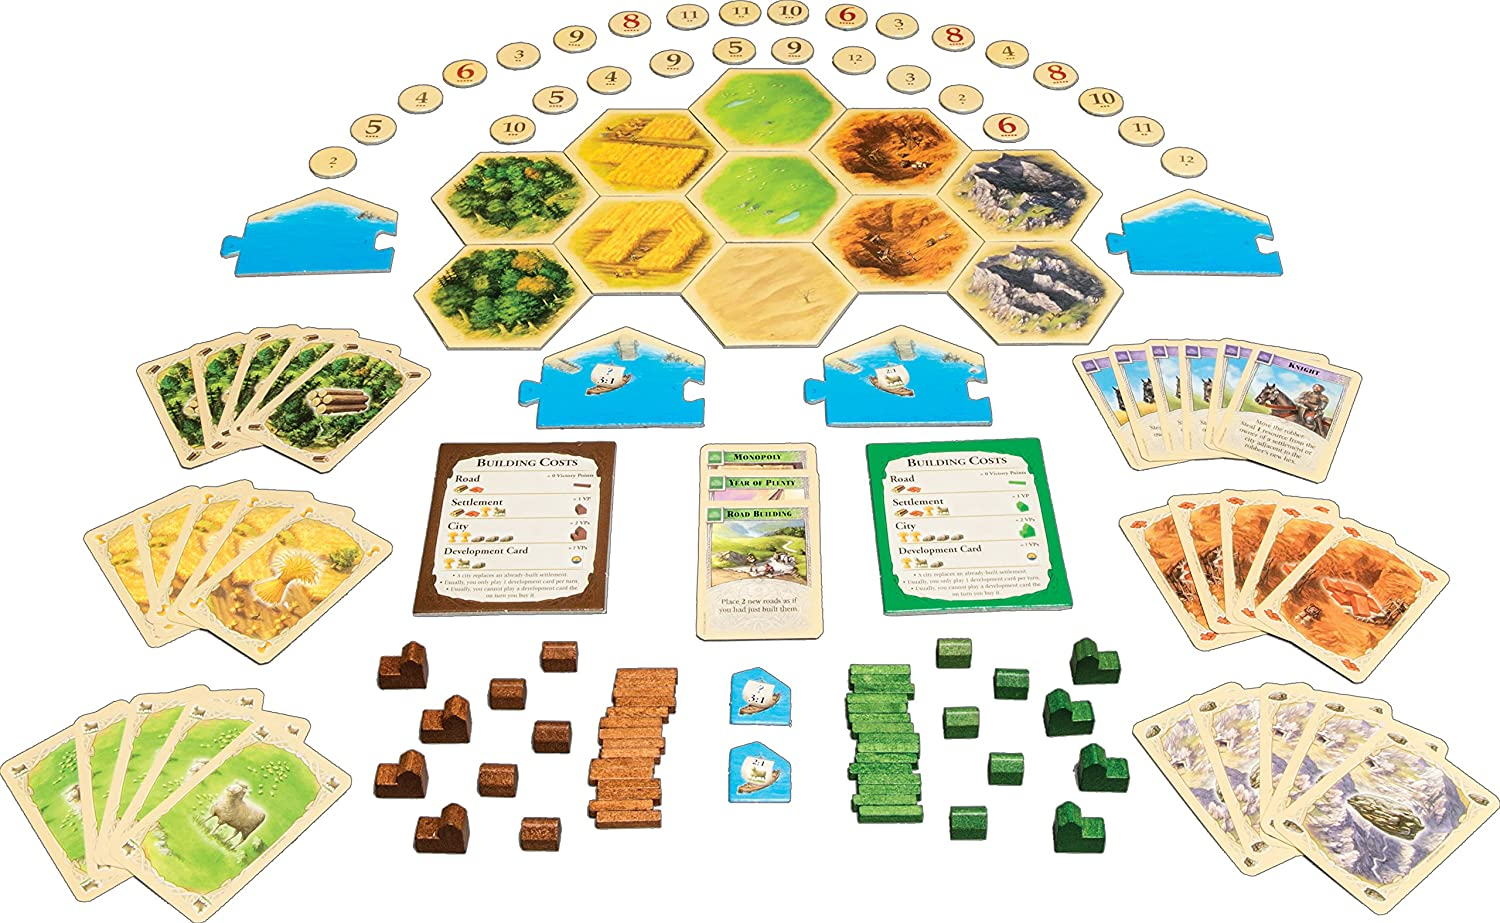 Mayfair Games Catan Expansion 5 to 6 Player Extension Board Game: Amazon.es: Juguetes y juegos